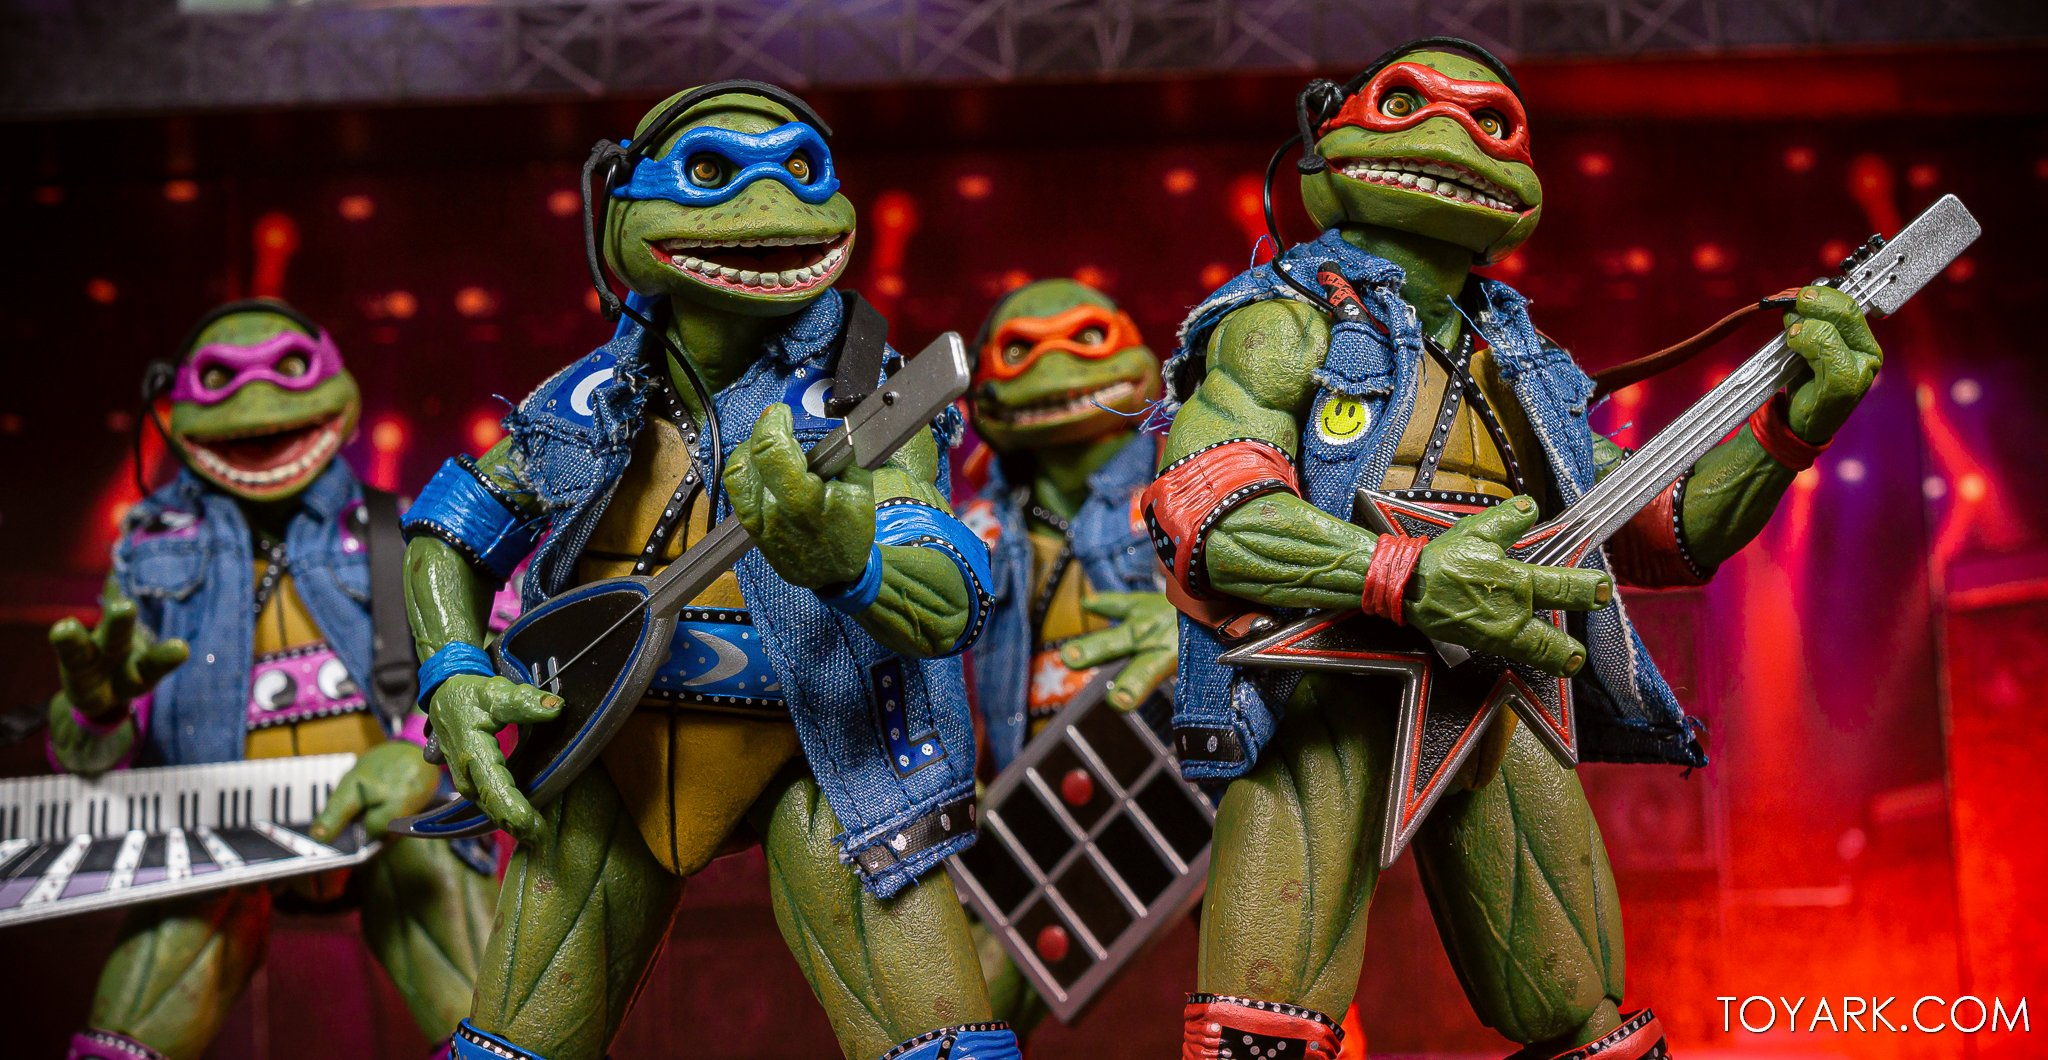 https://news.toyark.com/wp-content/uploads/sites/4/2020/07/SDCC-2020-TMNT-Musical-Mutagen-Tour-073.jpg